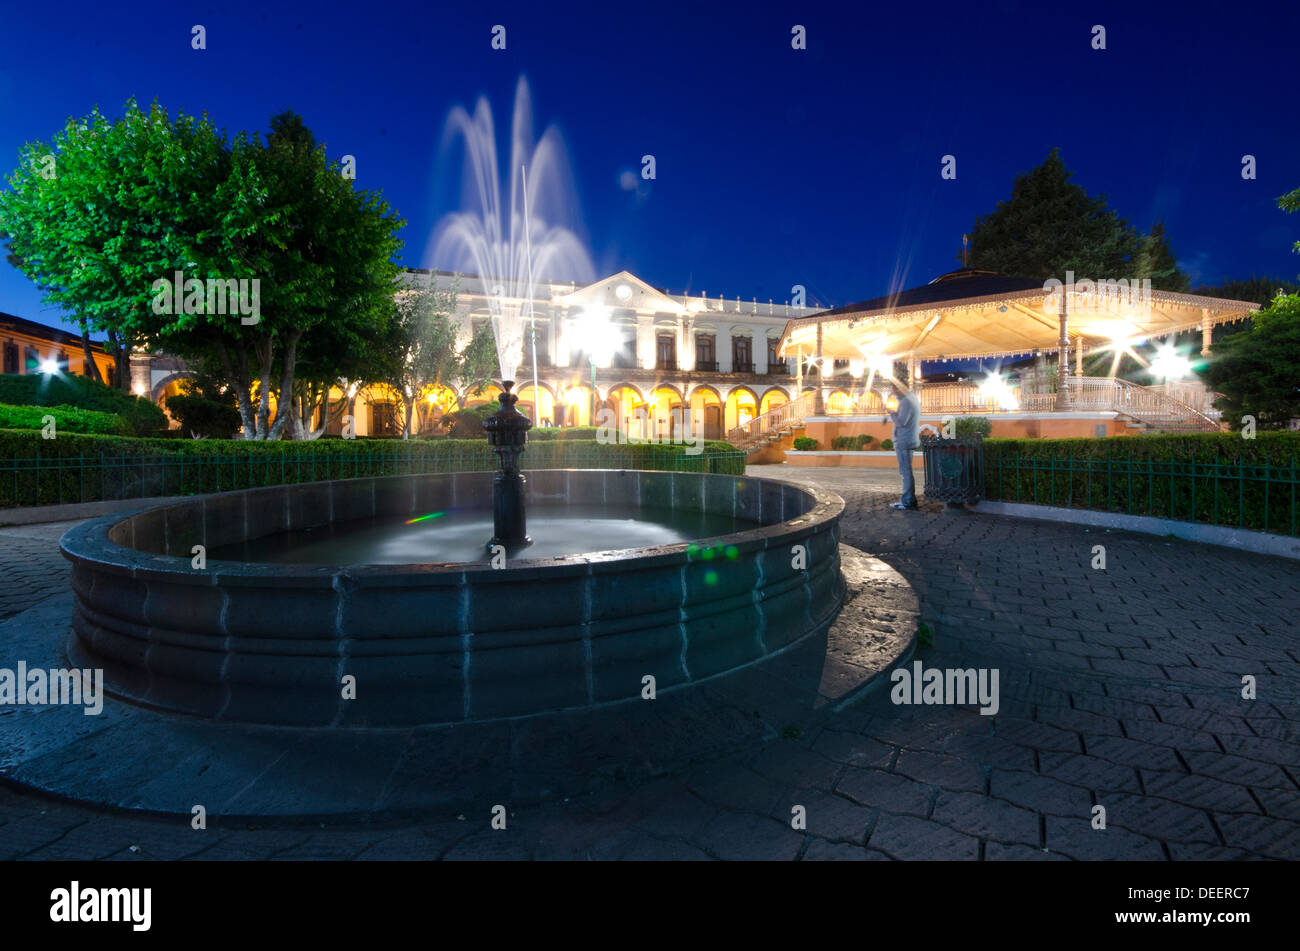 Night time in main plaza in Zacatlan in Central Mexico showing fountain and bandstand Stock Photo